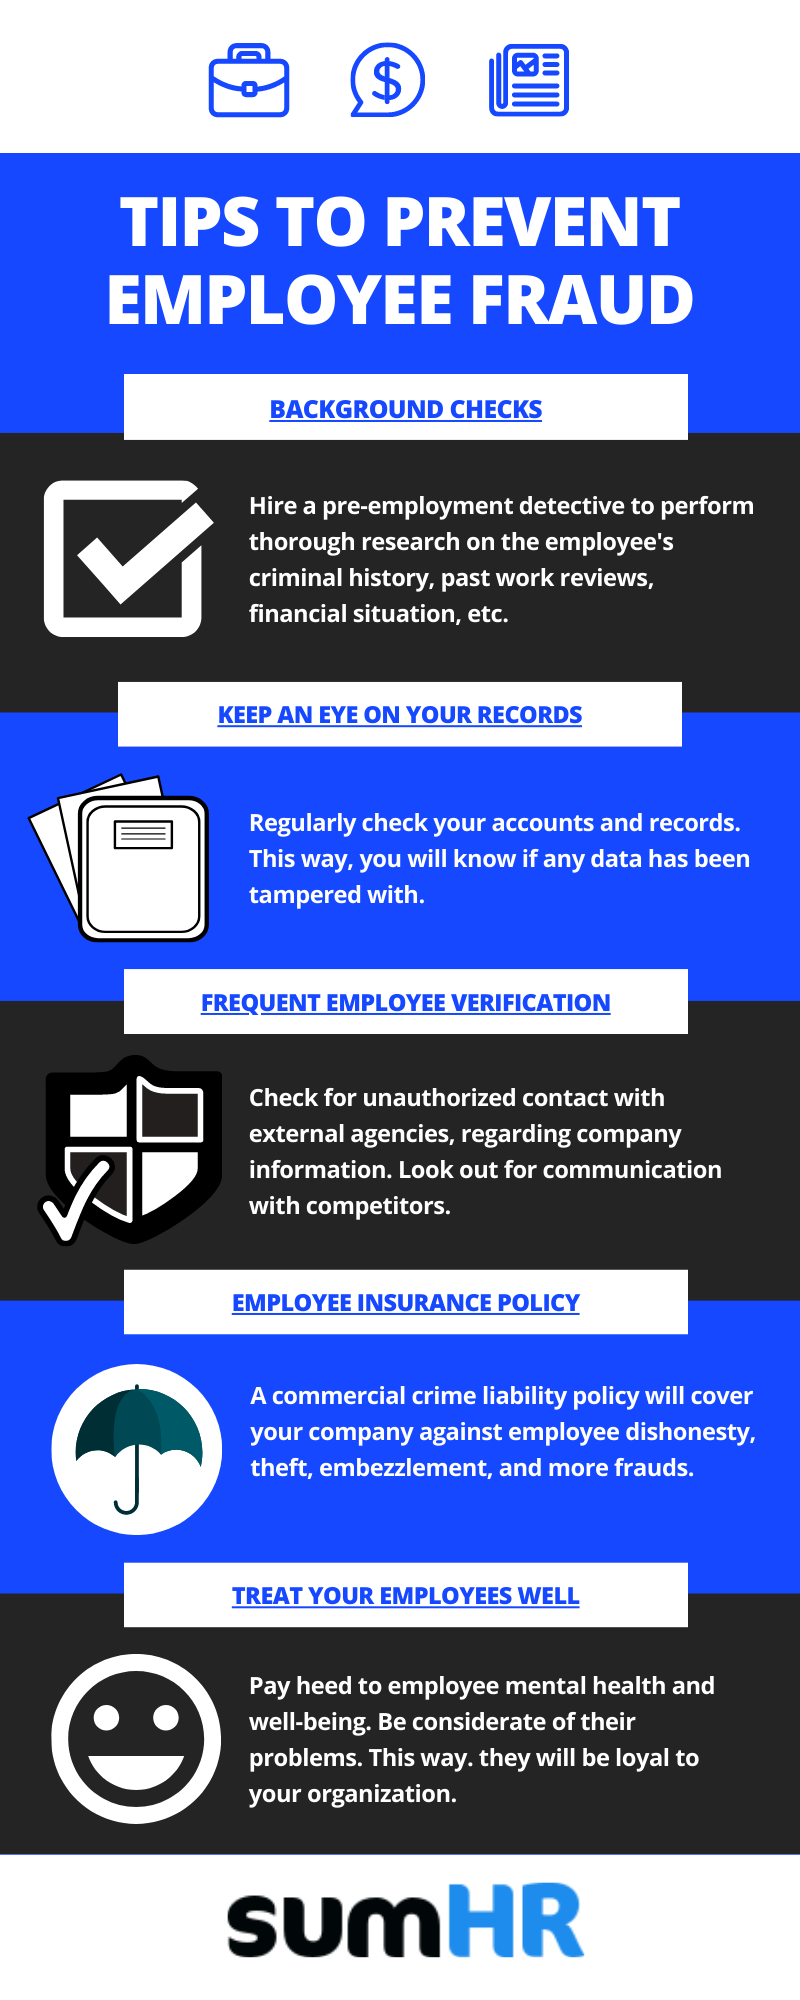 Tips To Prevent Employee Fraud